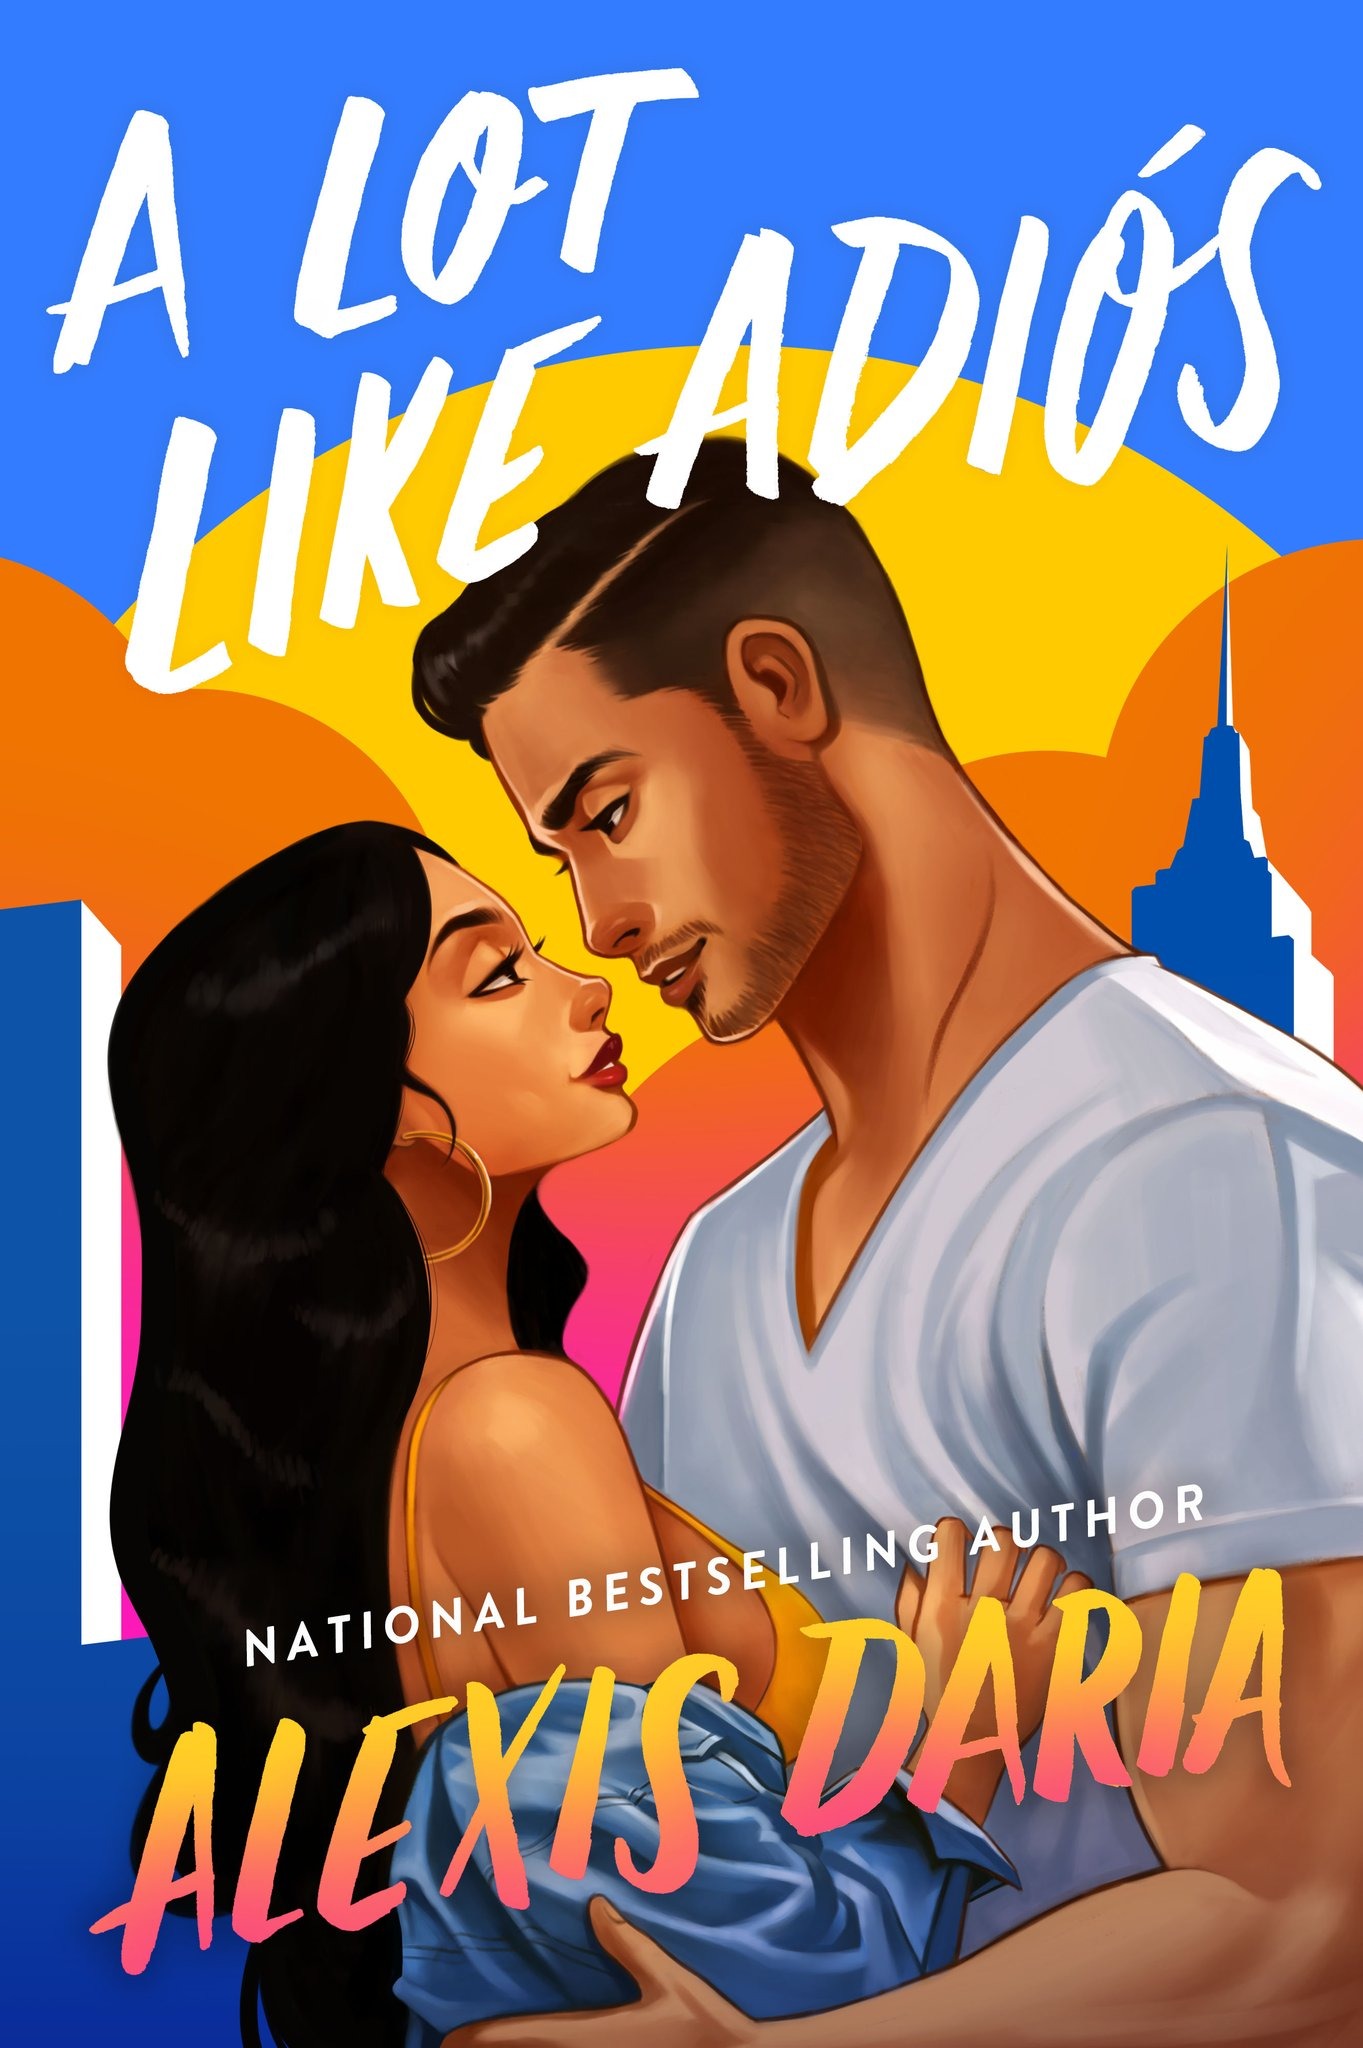 When Will A Lot Like Adiós Come Out? Alexis Daria 2021 New Book